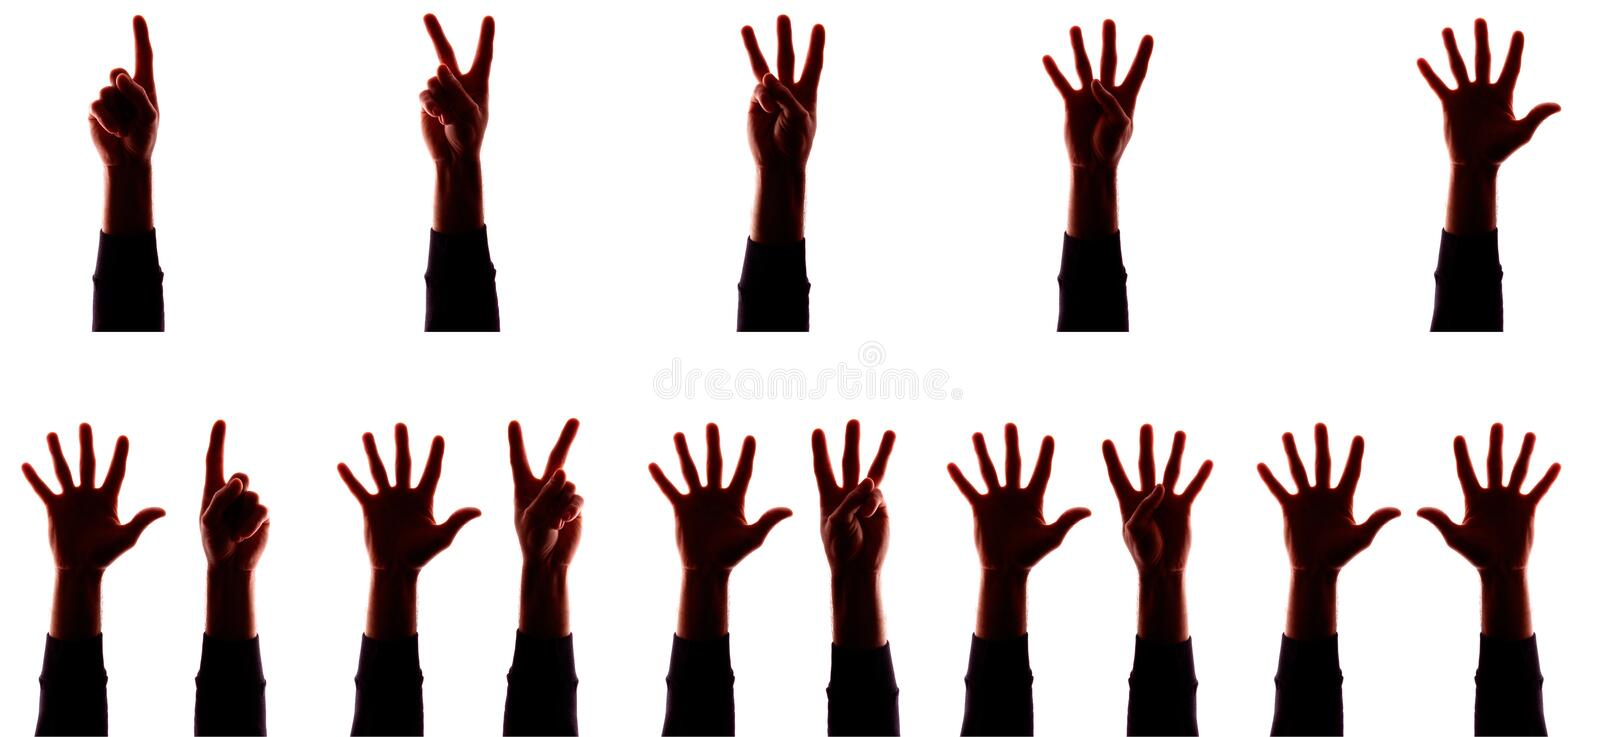 Many hand`s young man with fingers apart, numbers - silhouette, concept stock images